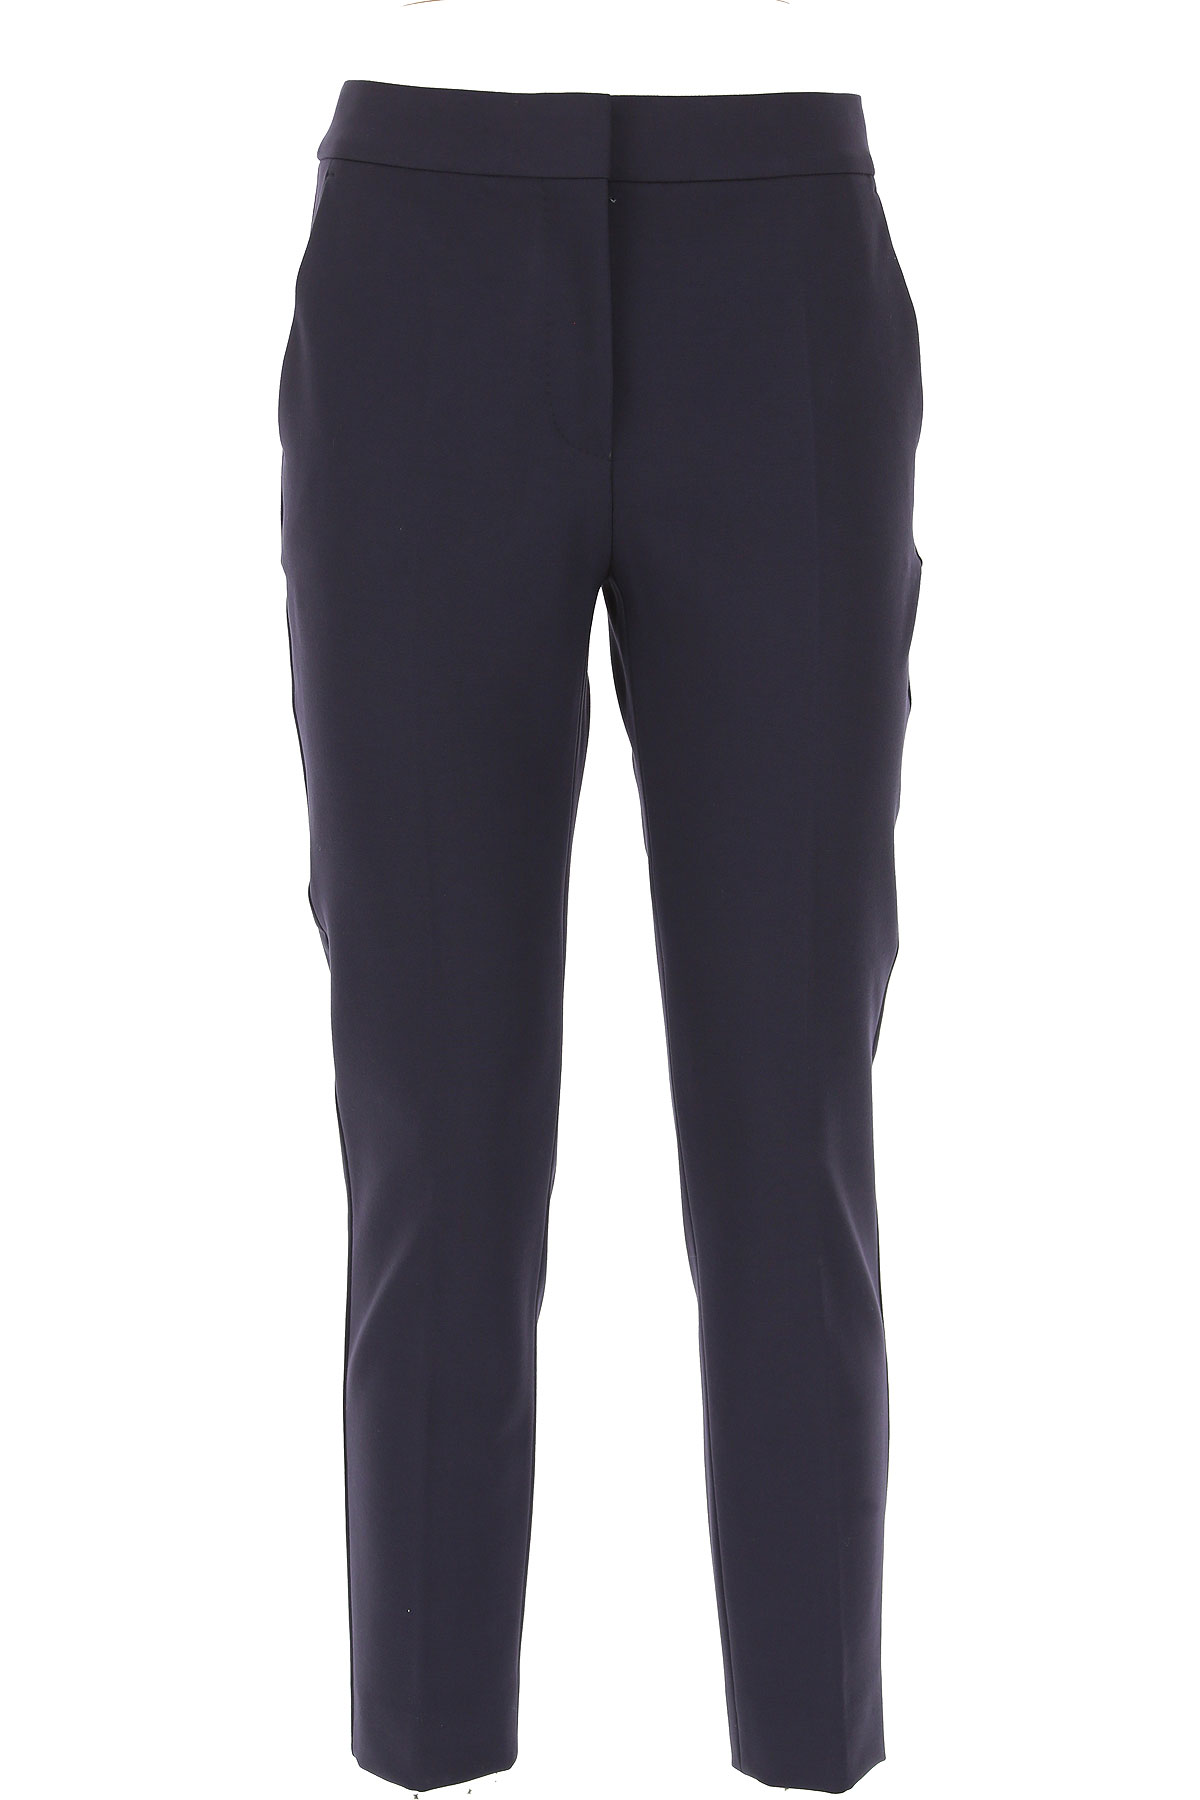 Image of Weekend by Max Mara Pants for Women, Blue Navy, Viscose, 2017, 28 30 32